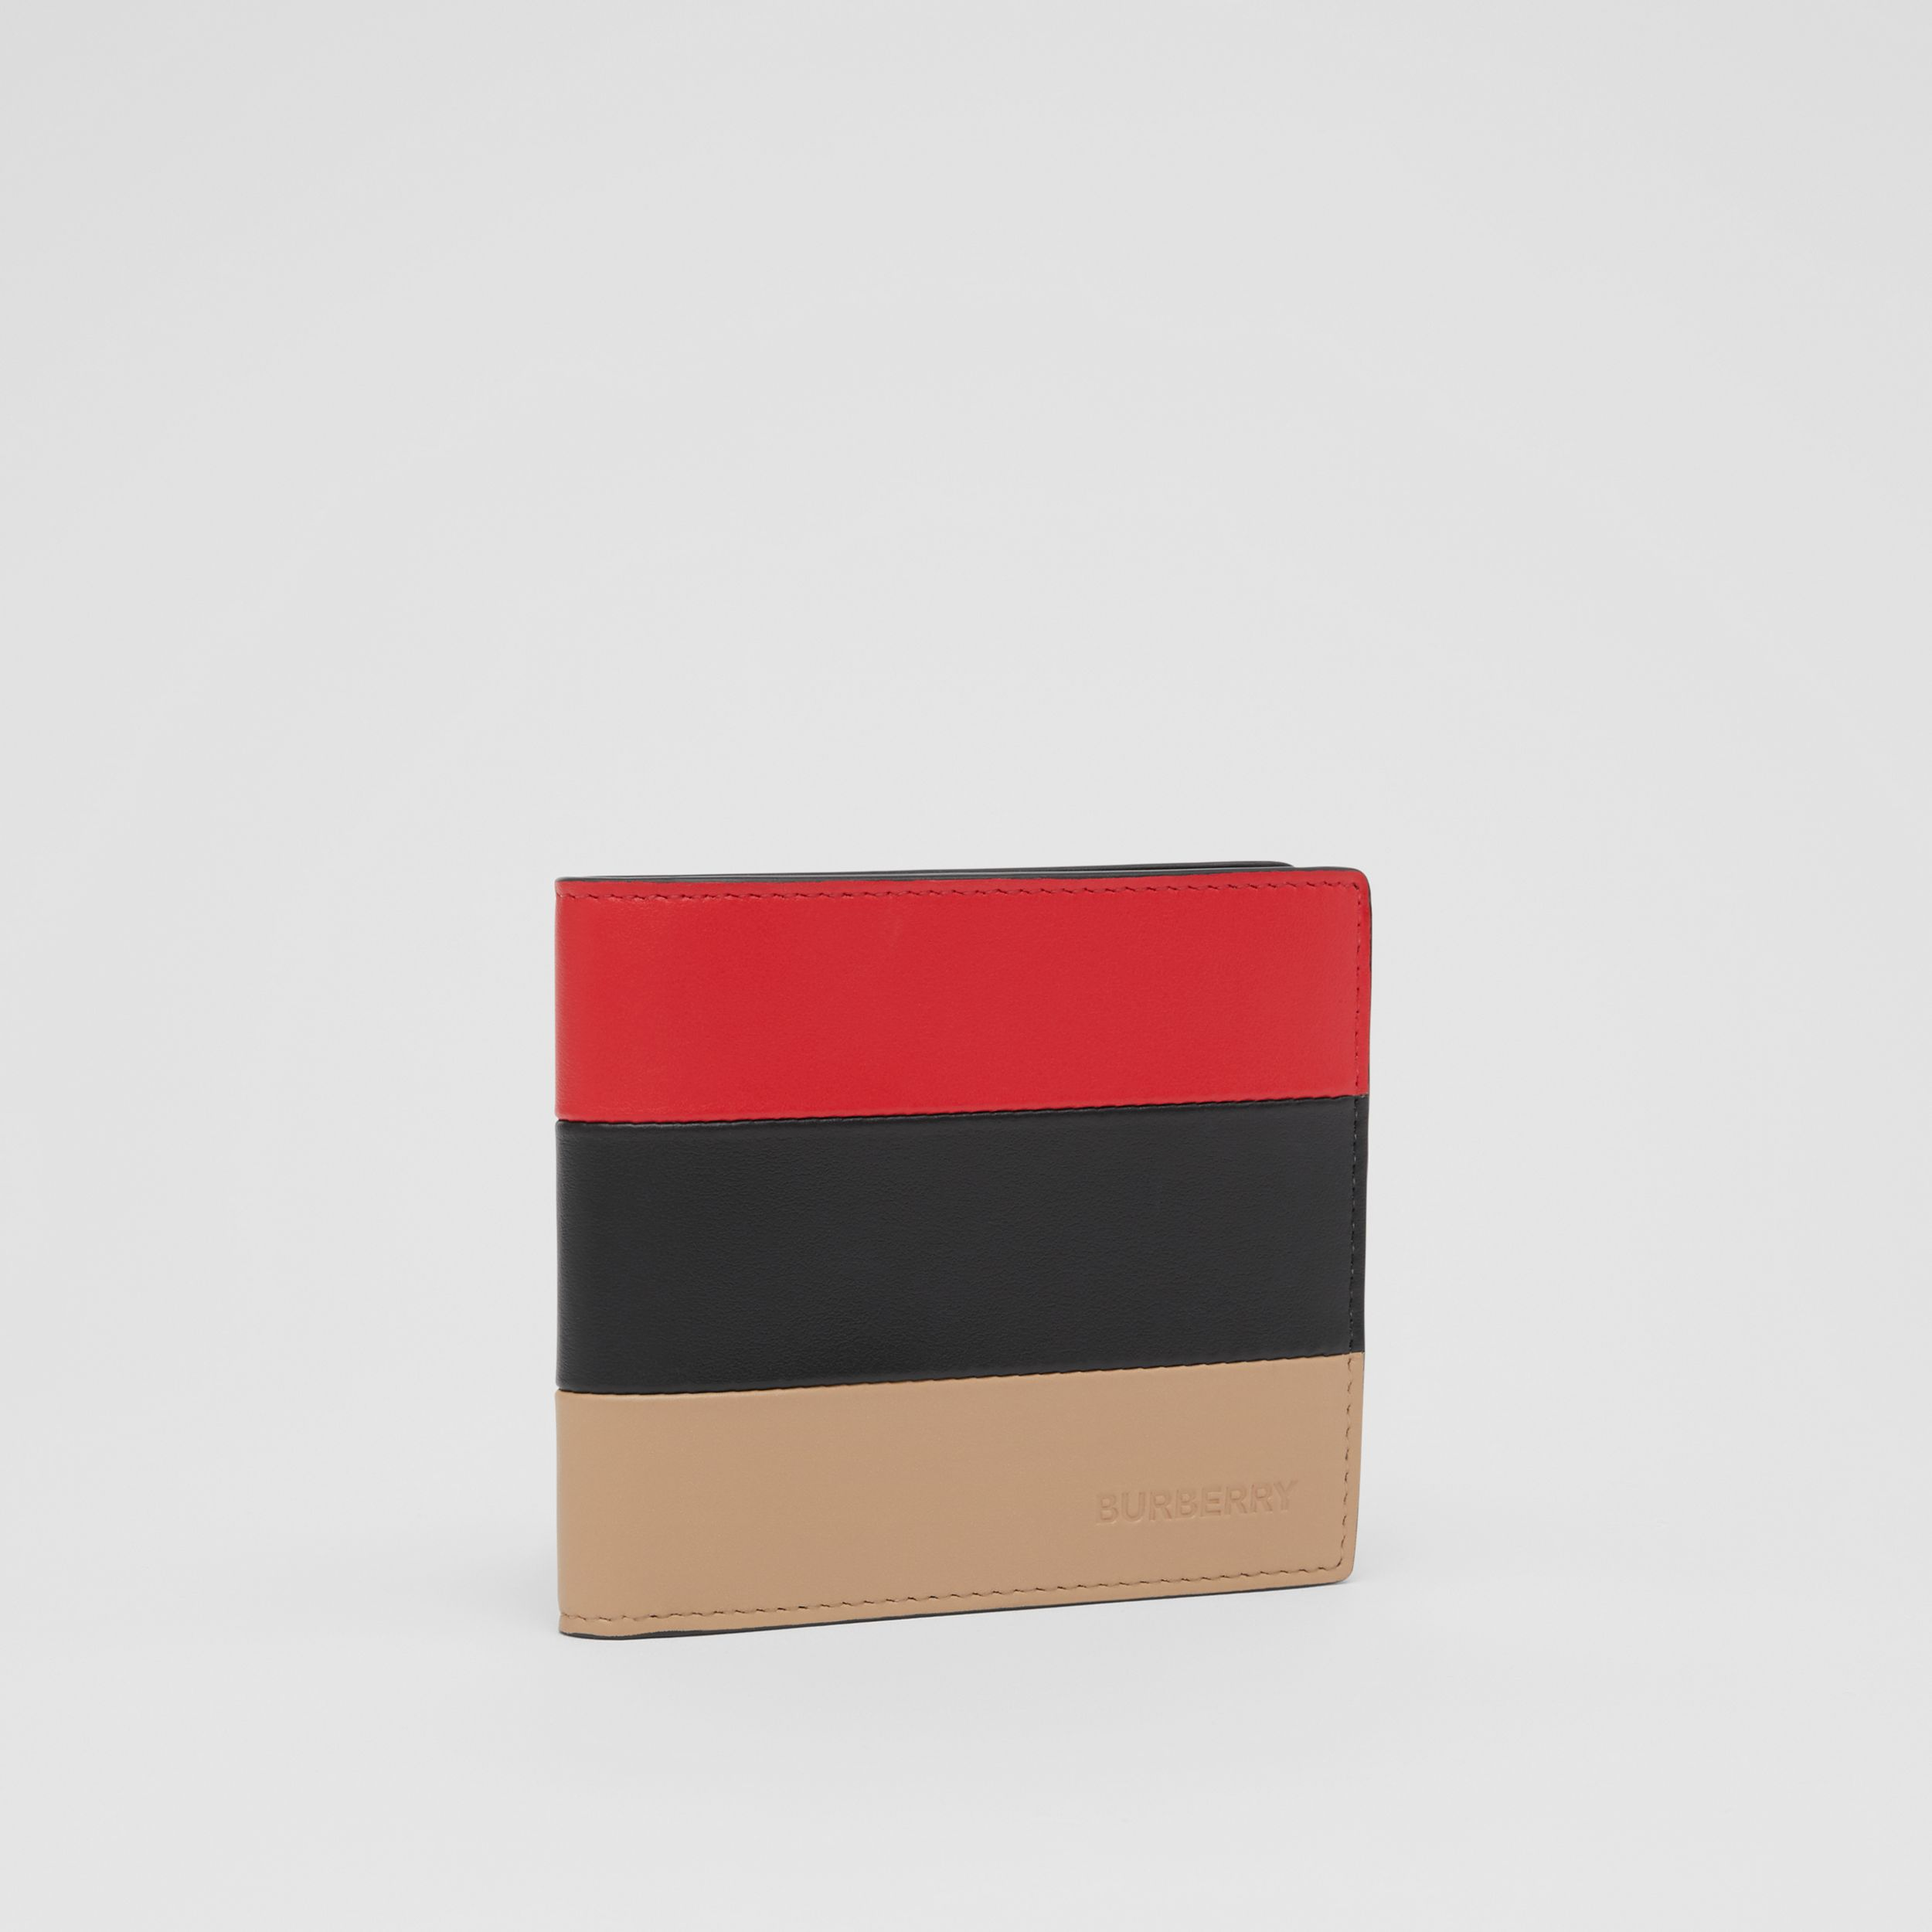 Colour Block Leather International Bifold Wallet in Red/black/beige - Men | Burberry - 4